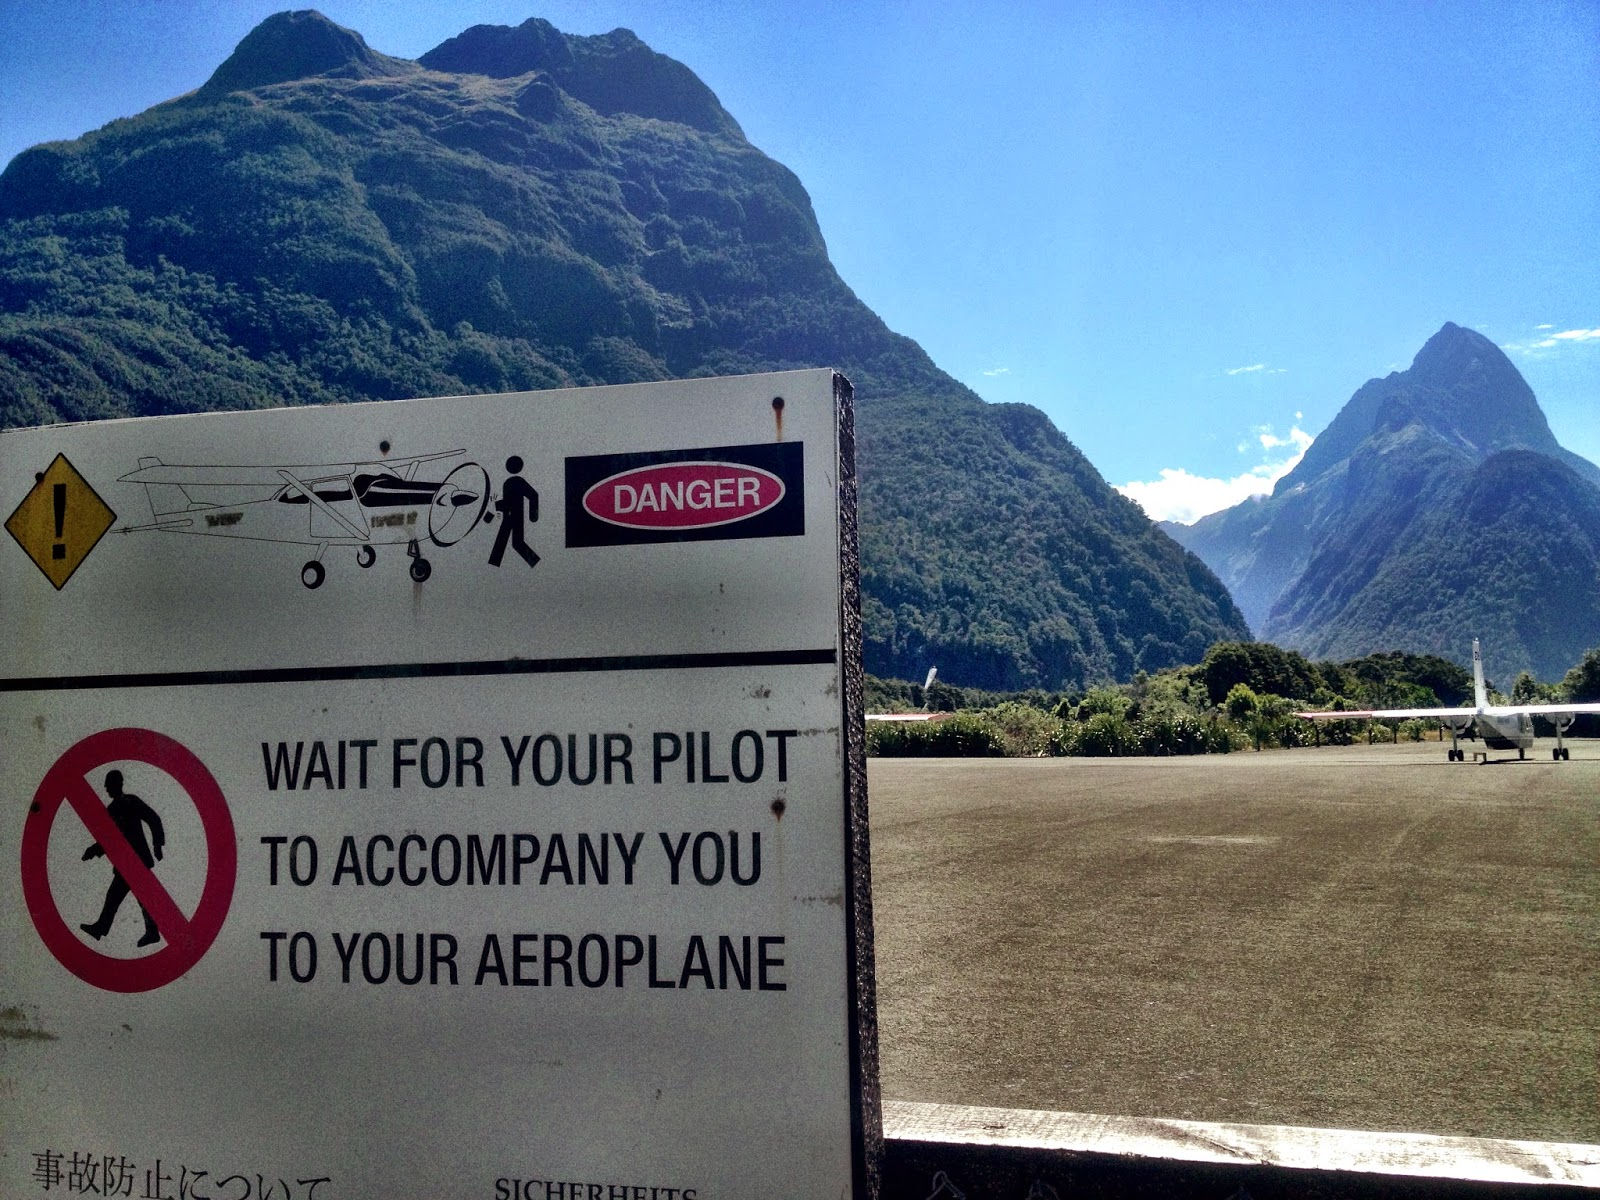 The pilot accompanies you to the plane - Milford Sound Airport, Fjordland, New Zealand